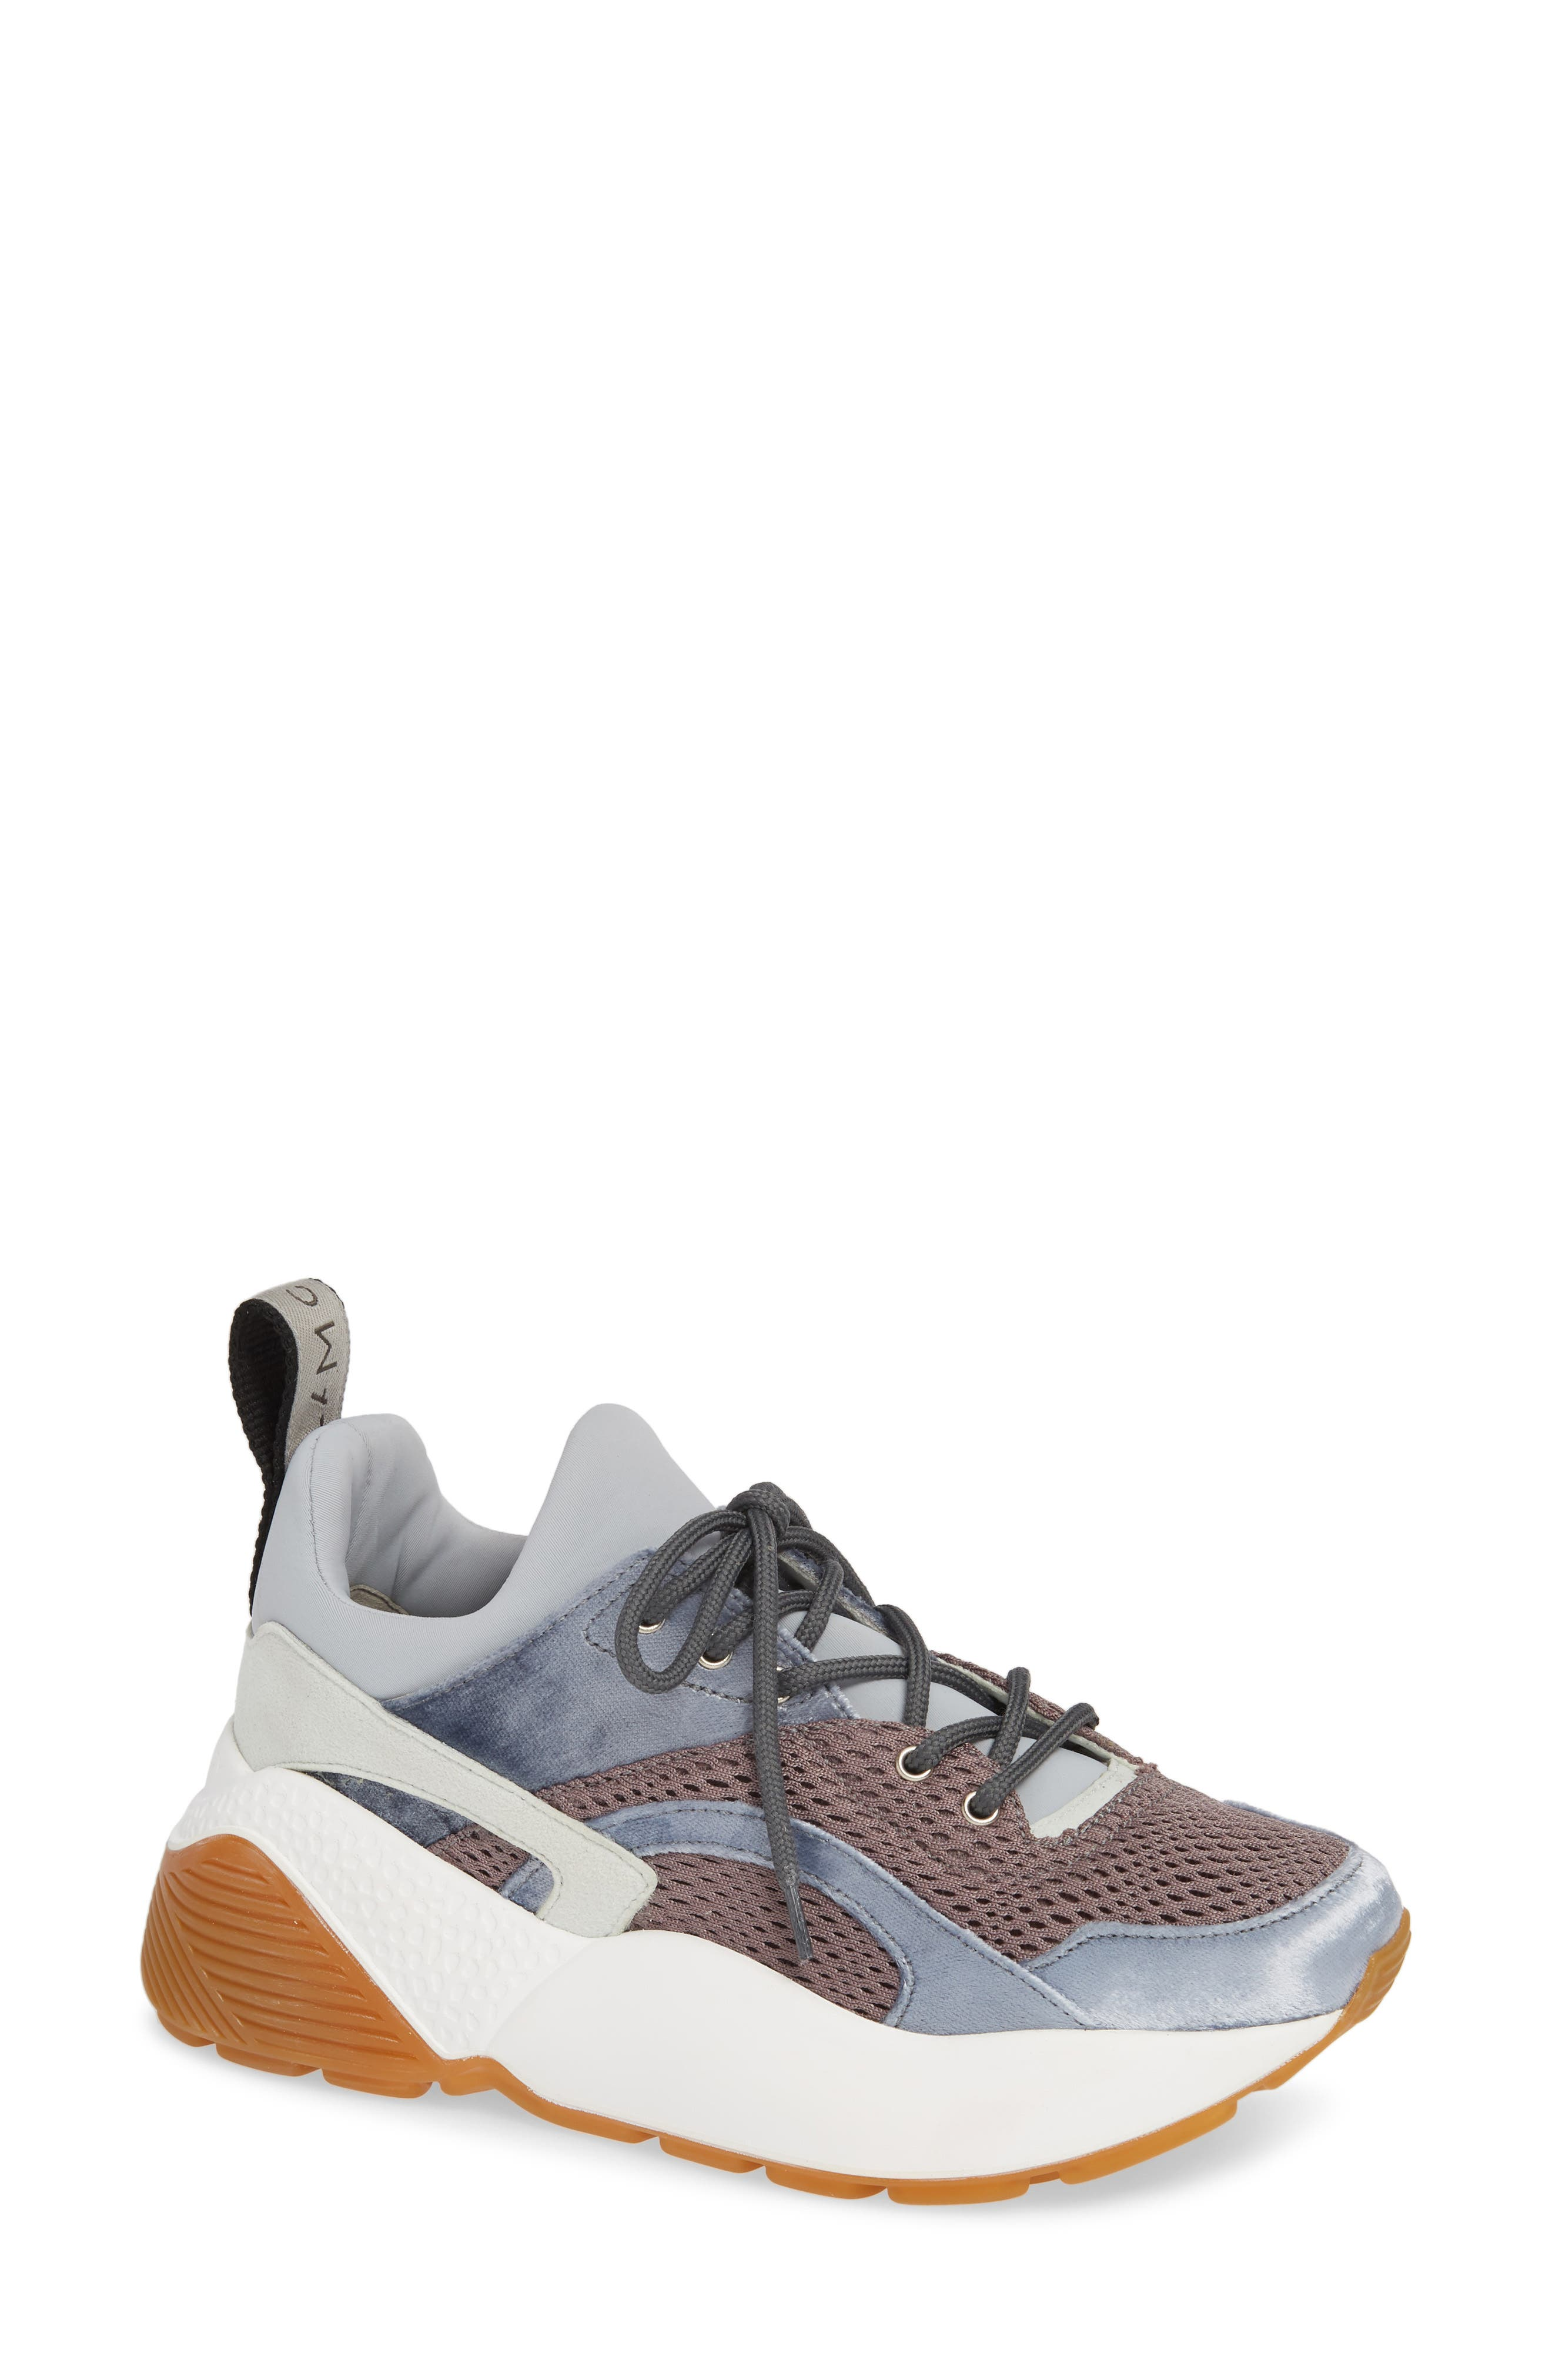 Eclypse Lace-Up Sneaker,                         Main,                         color, GREY/ SILVER/ WHITE